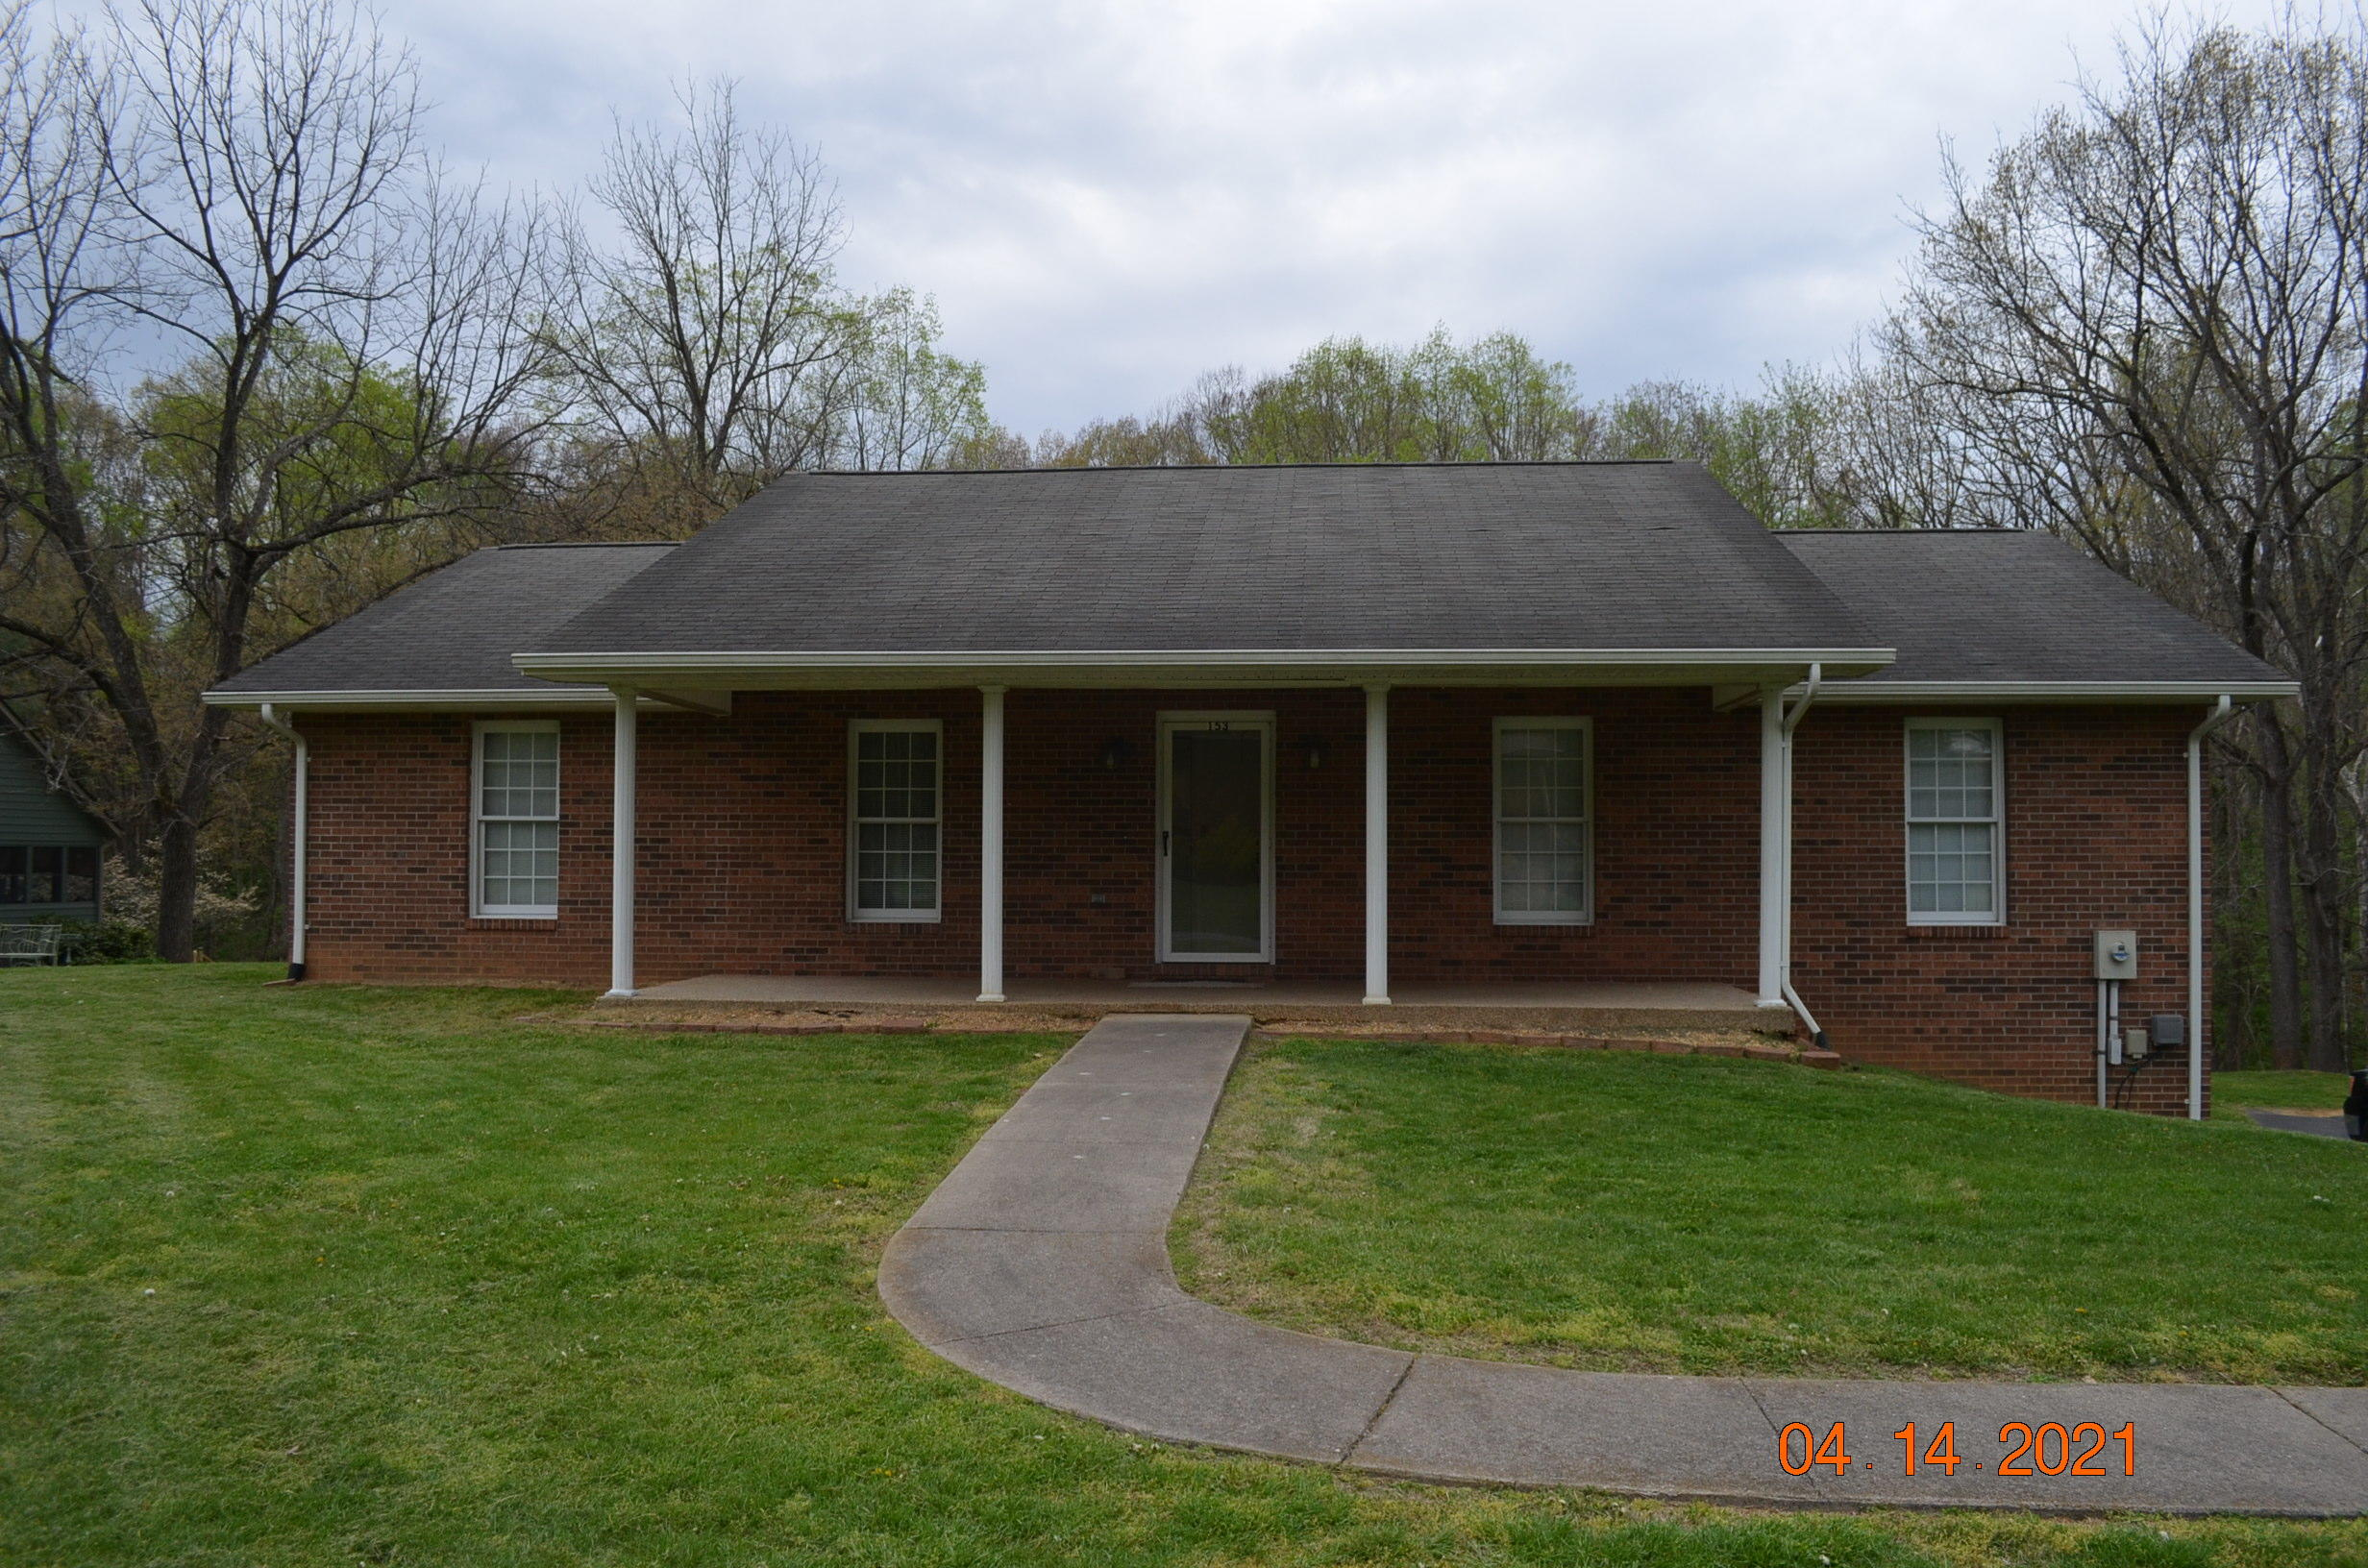 153 Rippling Run, Kingsport, Tennessee 37663, 3 Bedrooms Bedrooms, ,3 BathroomsBathrooms,Single Family,For Sale,153 Rippling Run,1,9920980